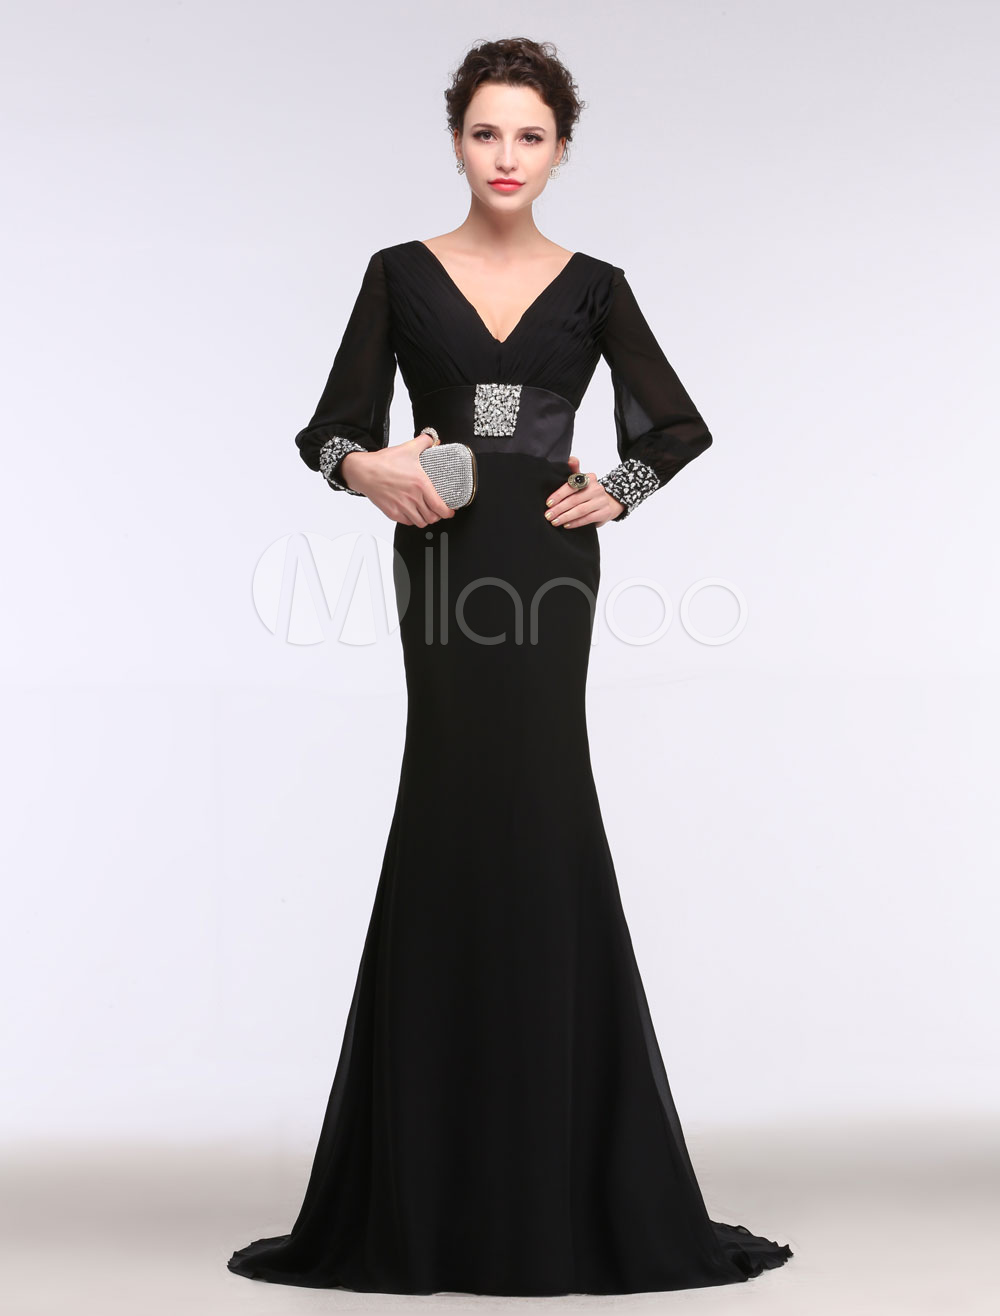 Buy Black Evening Dress Mermaid V Neck Chiffon Party Dress Beading Sweep Train Long Sleeve Formal Dress for $152.99 in Milanoo store